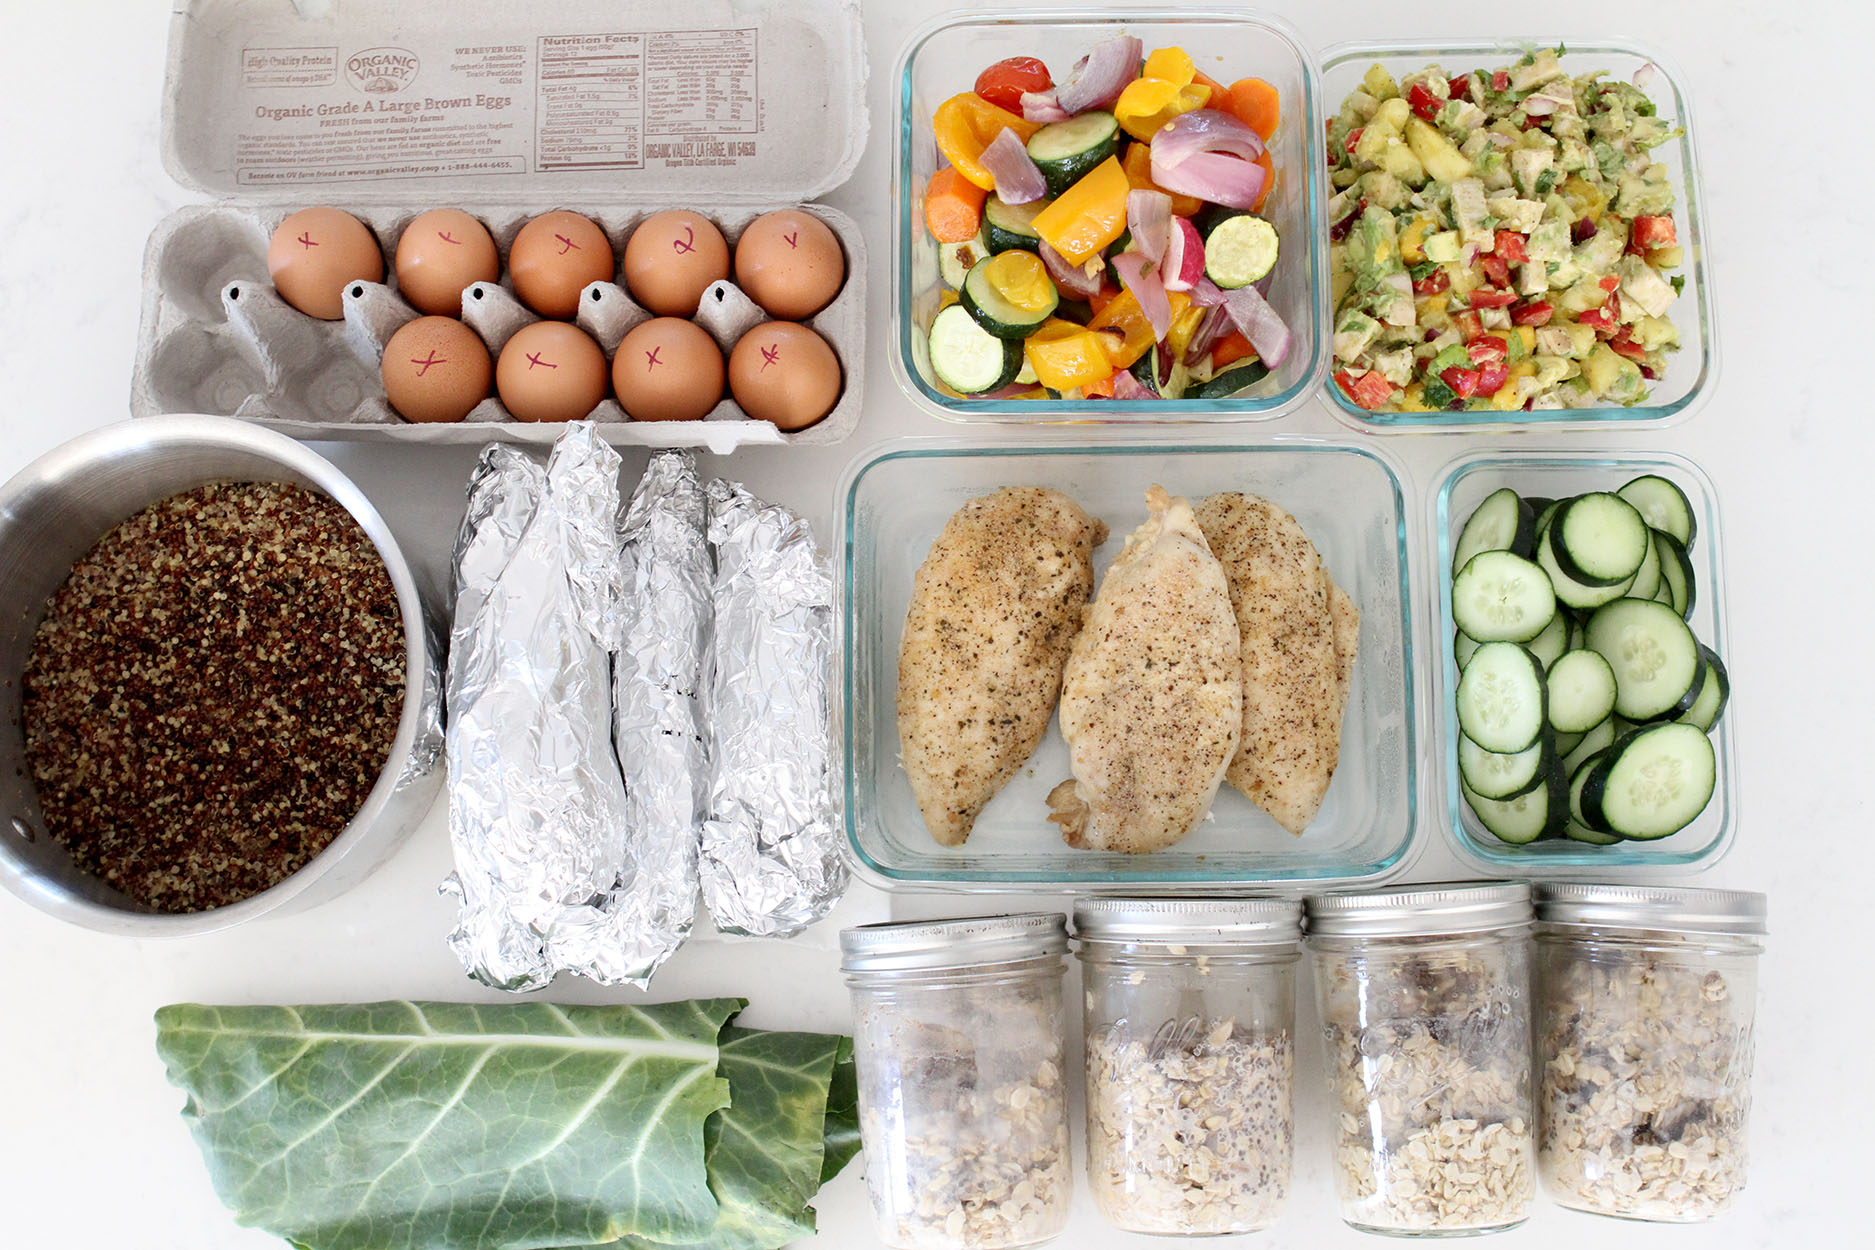 meal prep with hard boiled eggs, sauteed veggies, kale, chicken, cucumbers and chia seeds